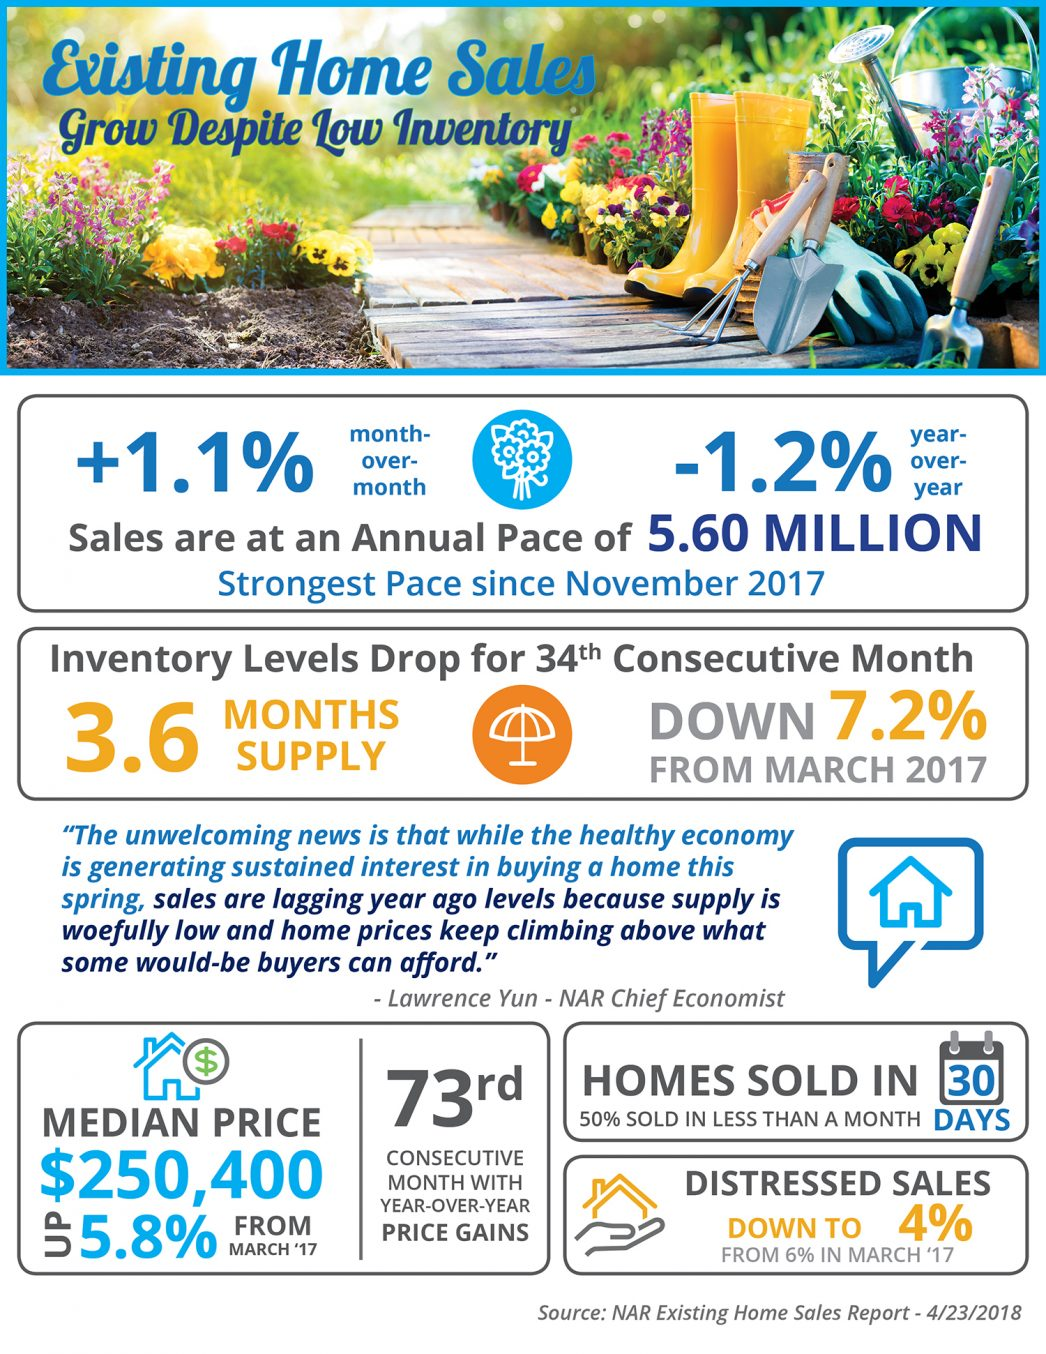 Existing Home Sales Grow Despite Low Inventory [INFOGRAPHIC] | MyKCM